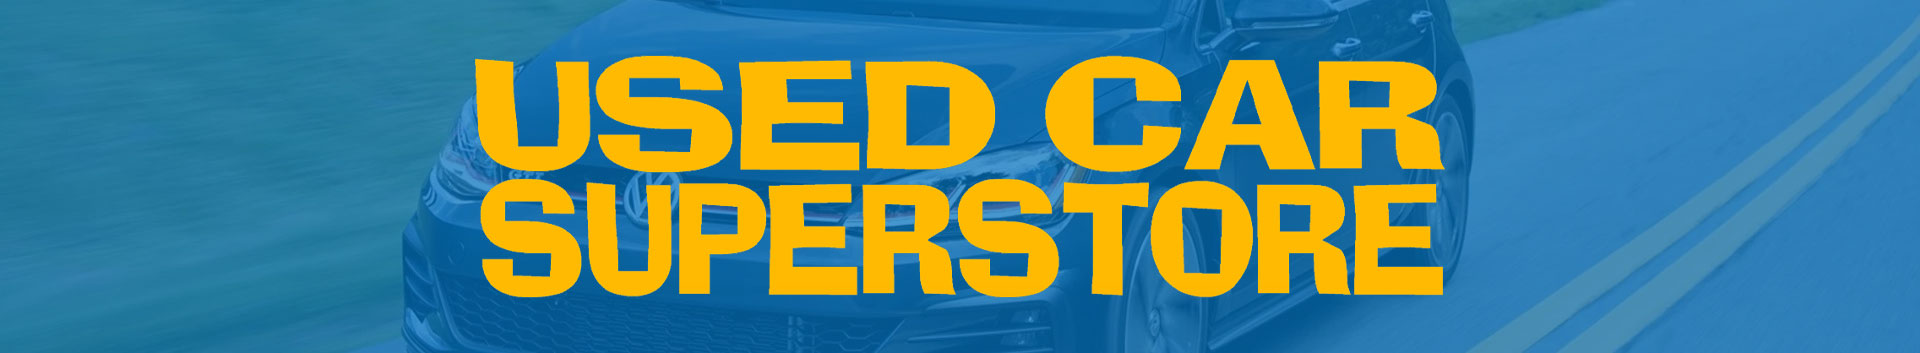 Used Car Superstore Header